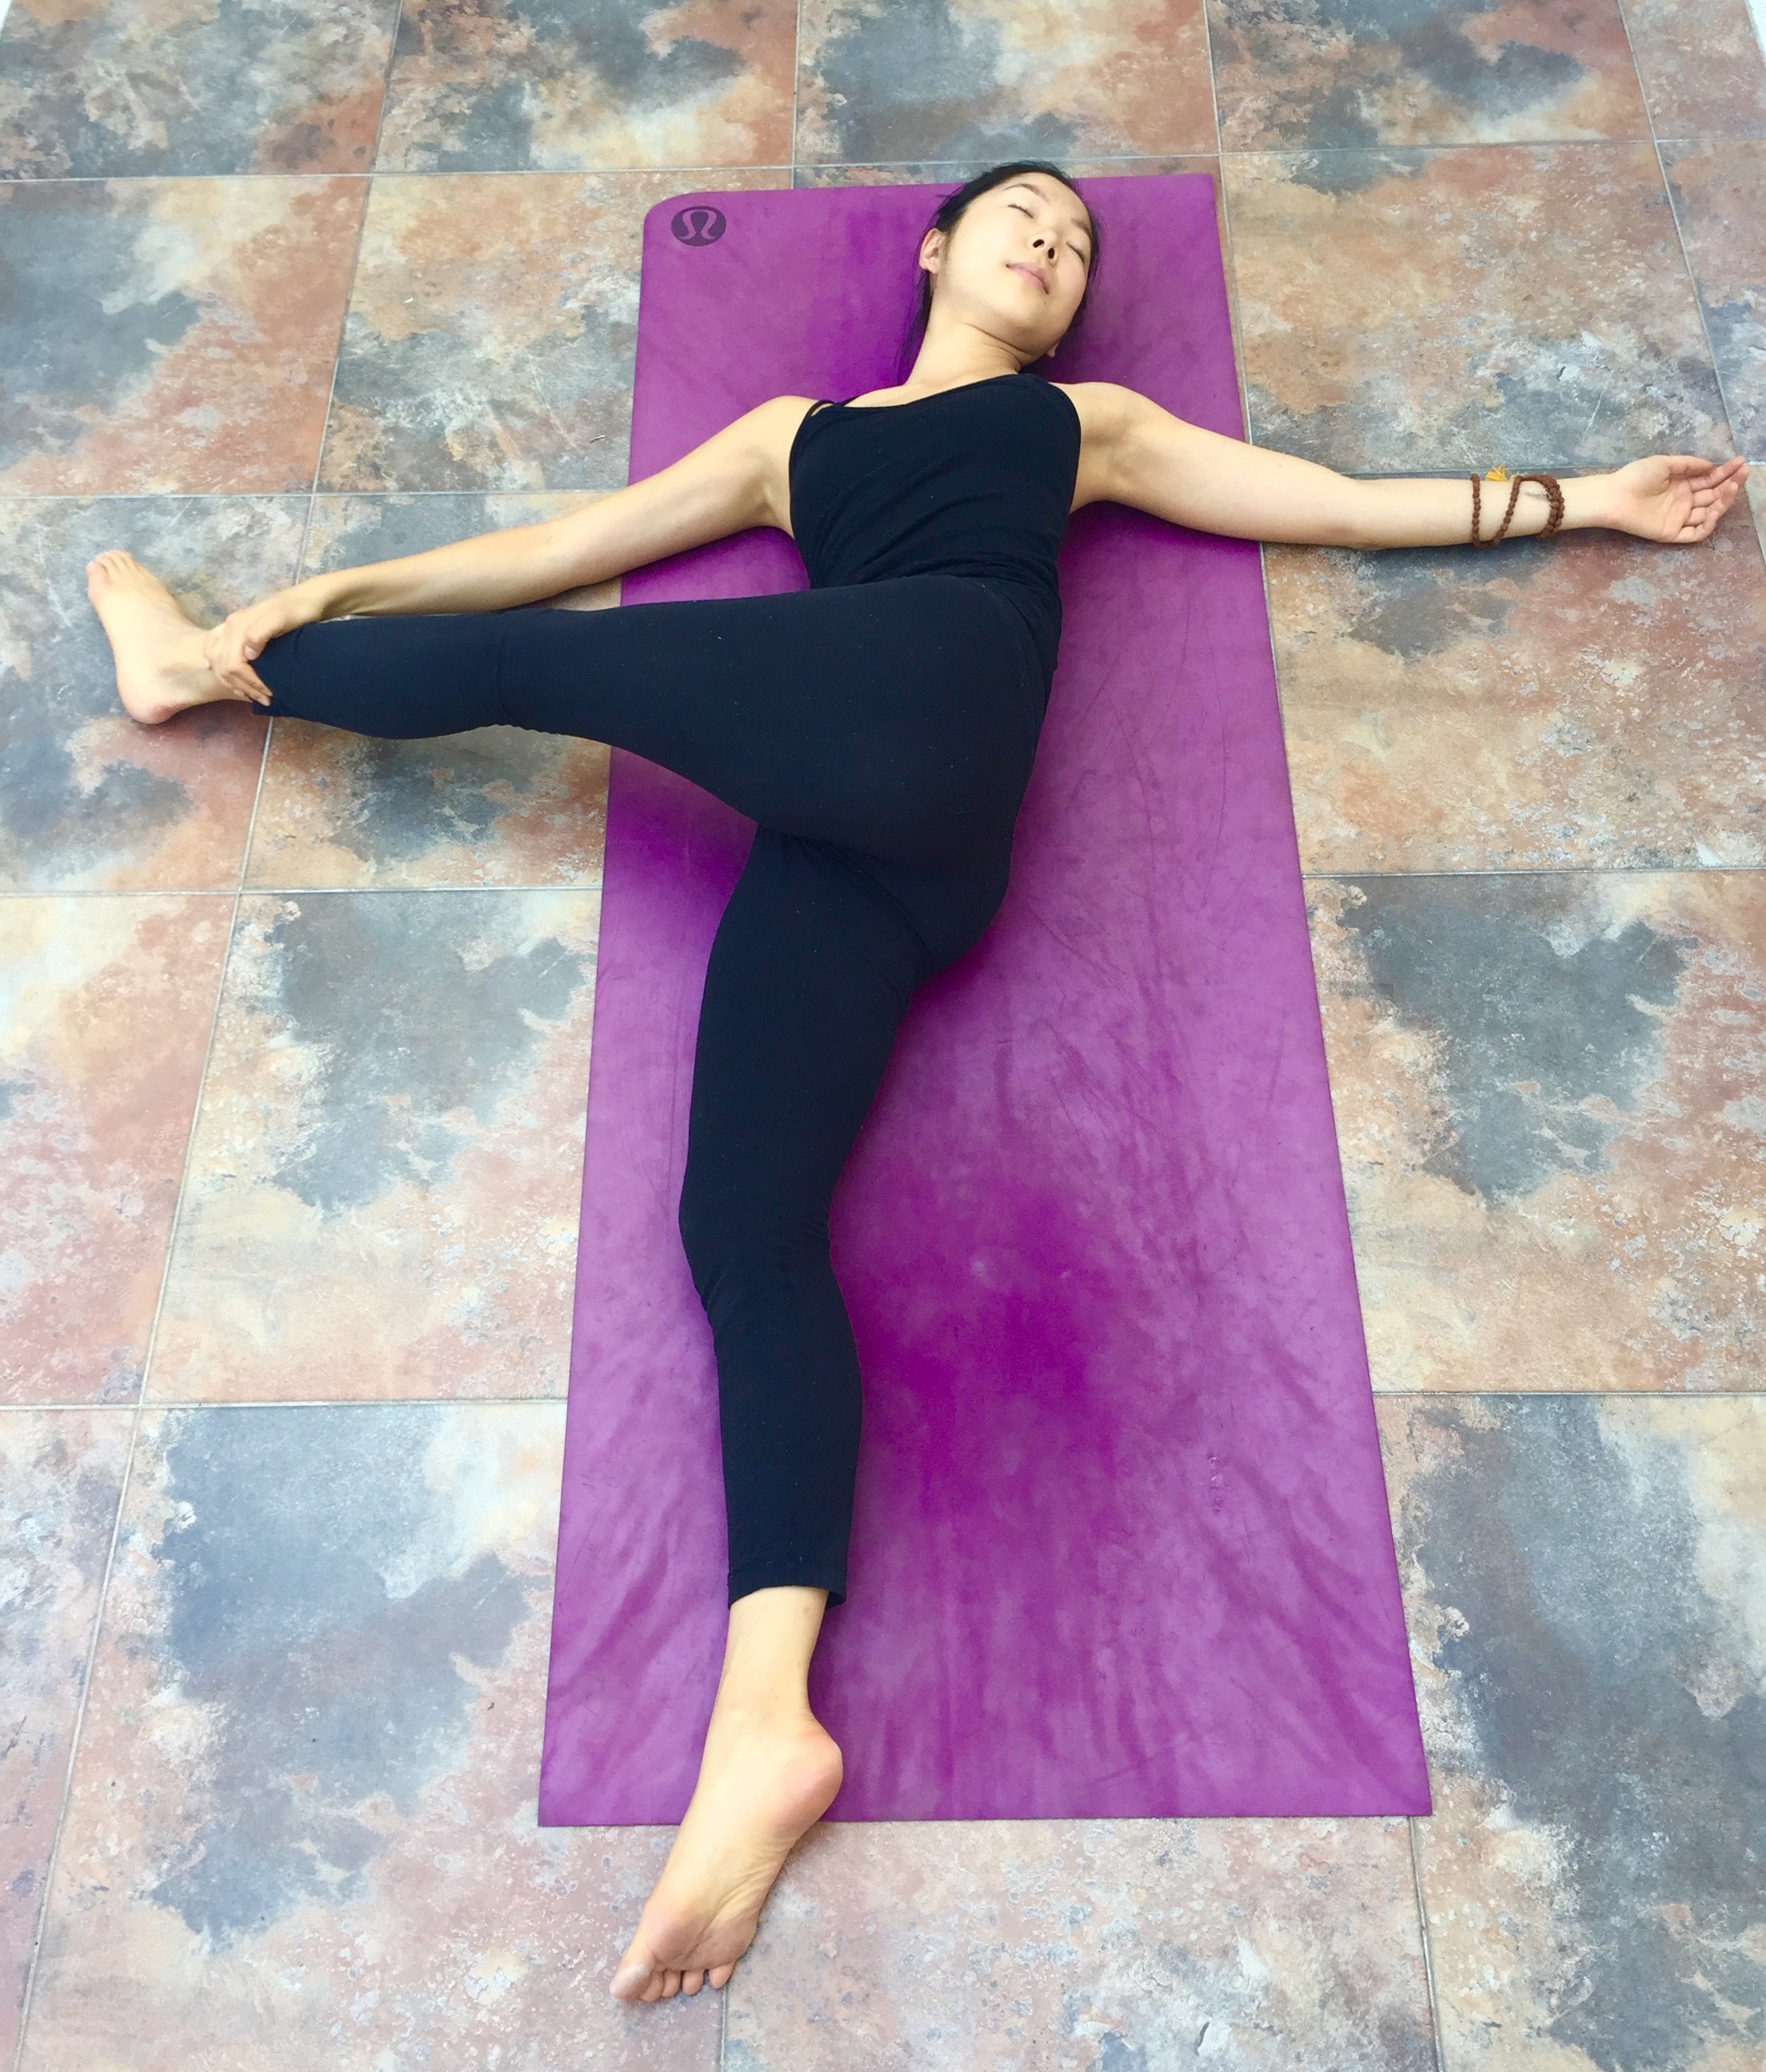 Reclining Twist variation- Annie Au Yin Yoga